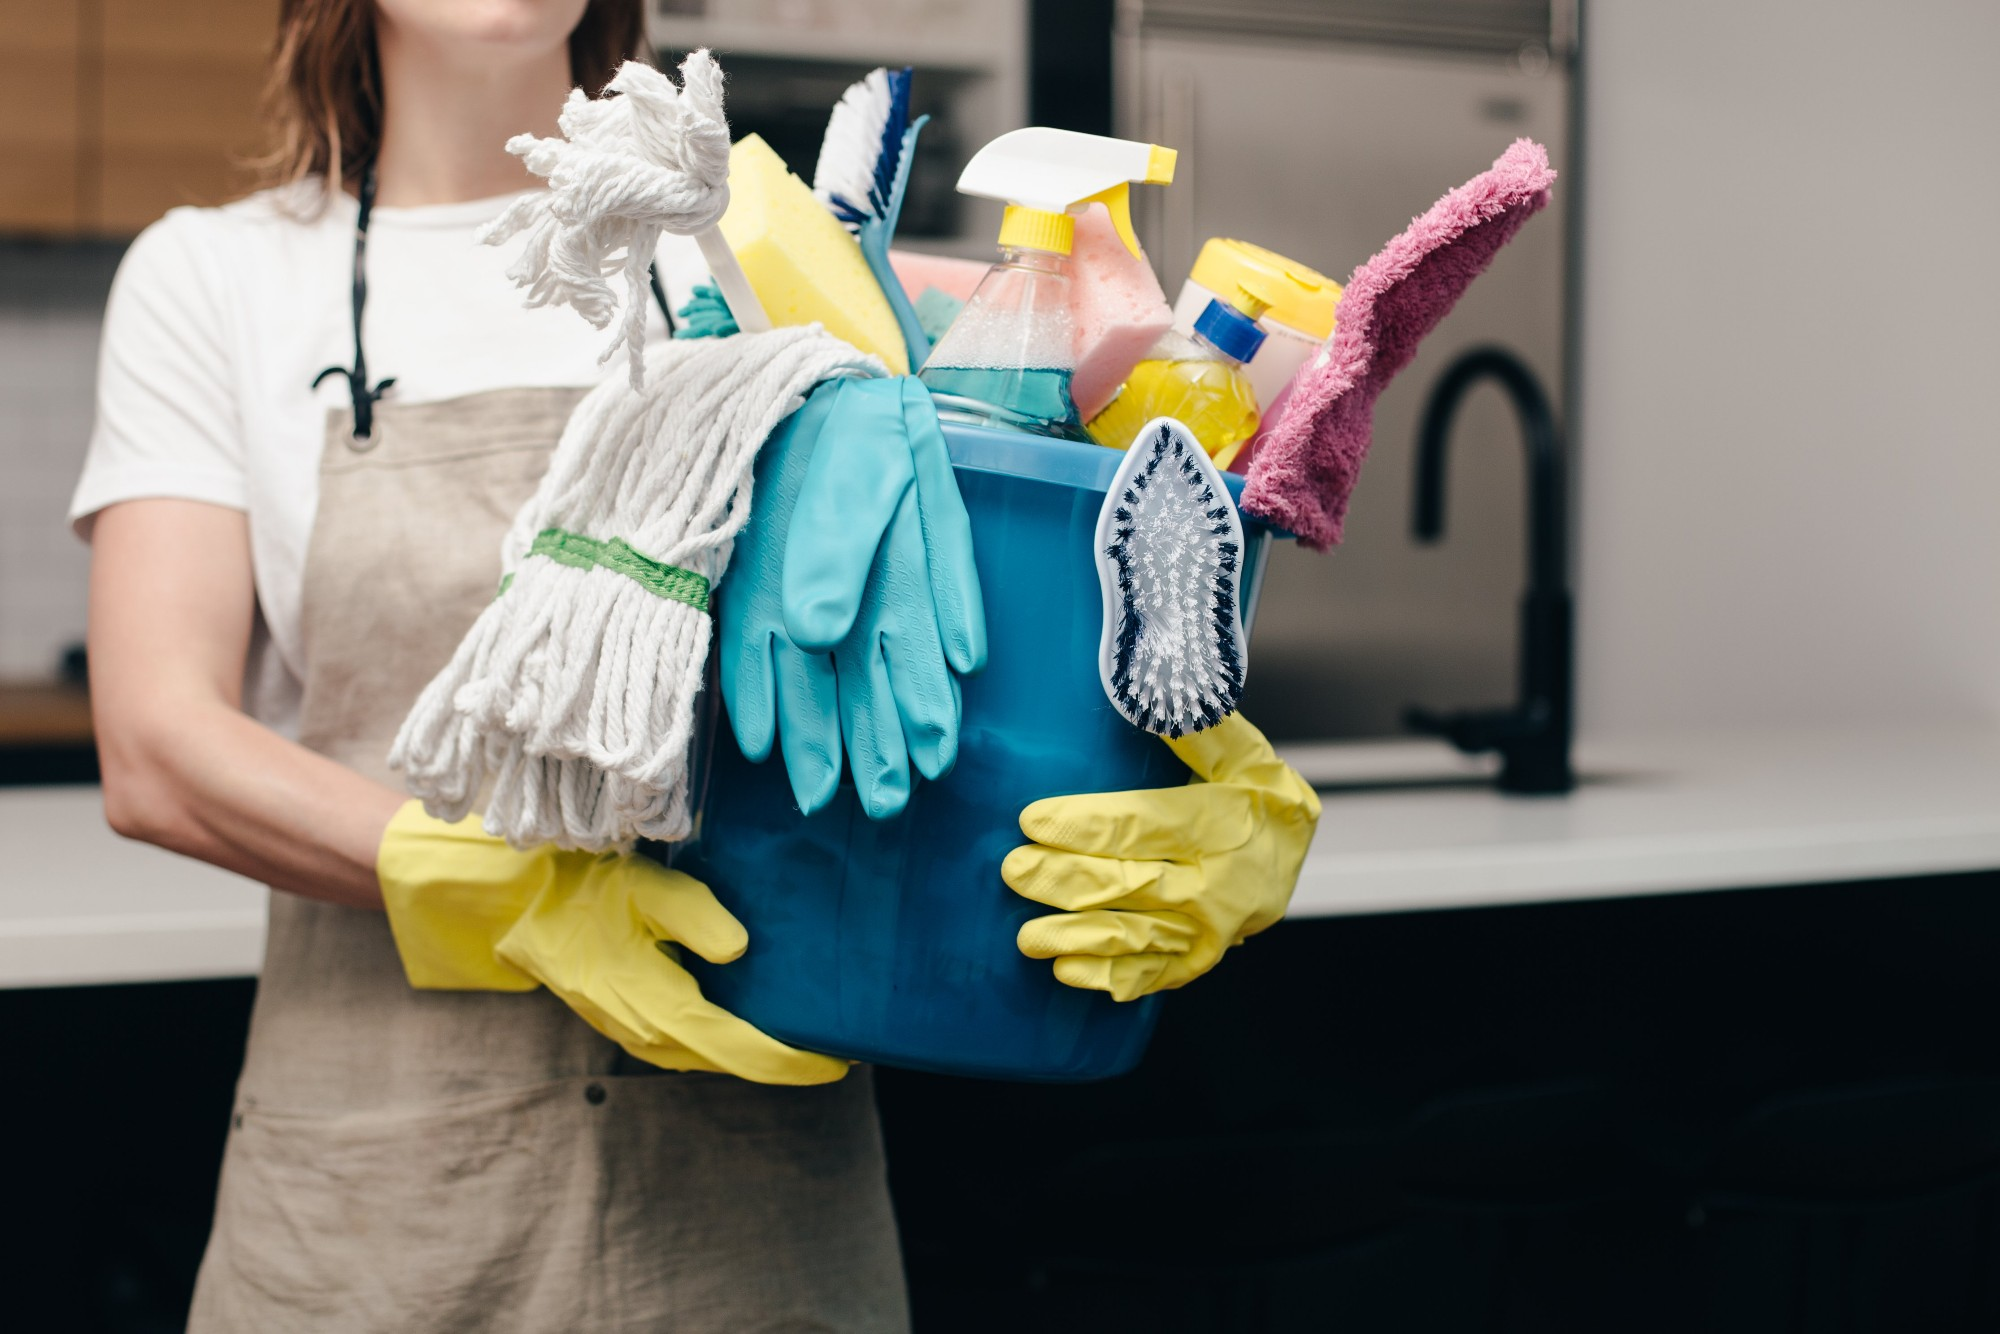 holding bucket of cleaning supplies